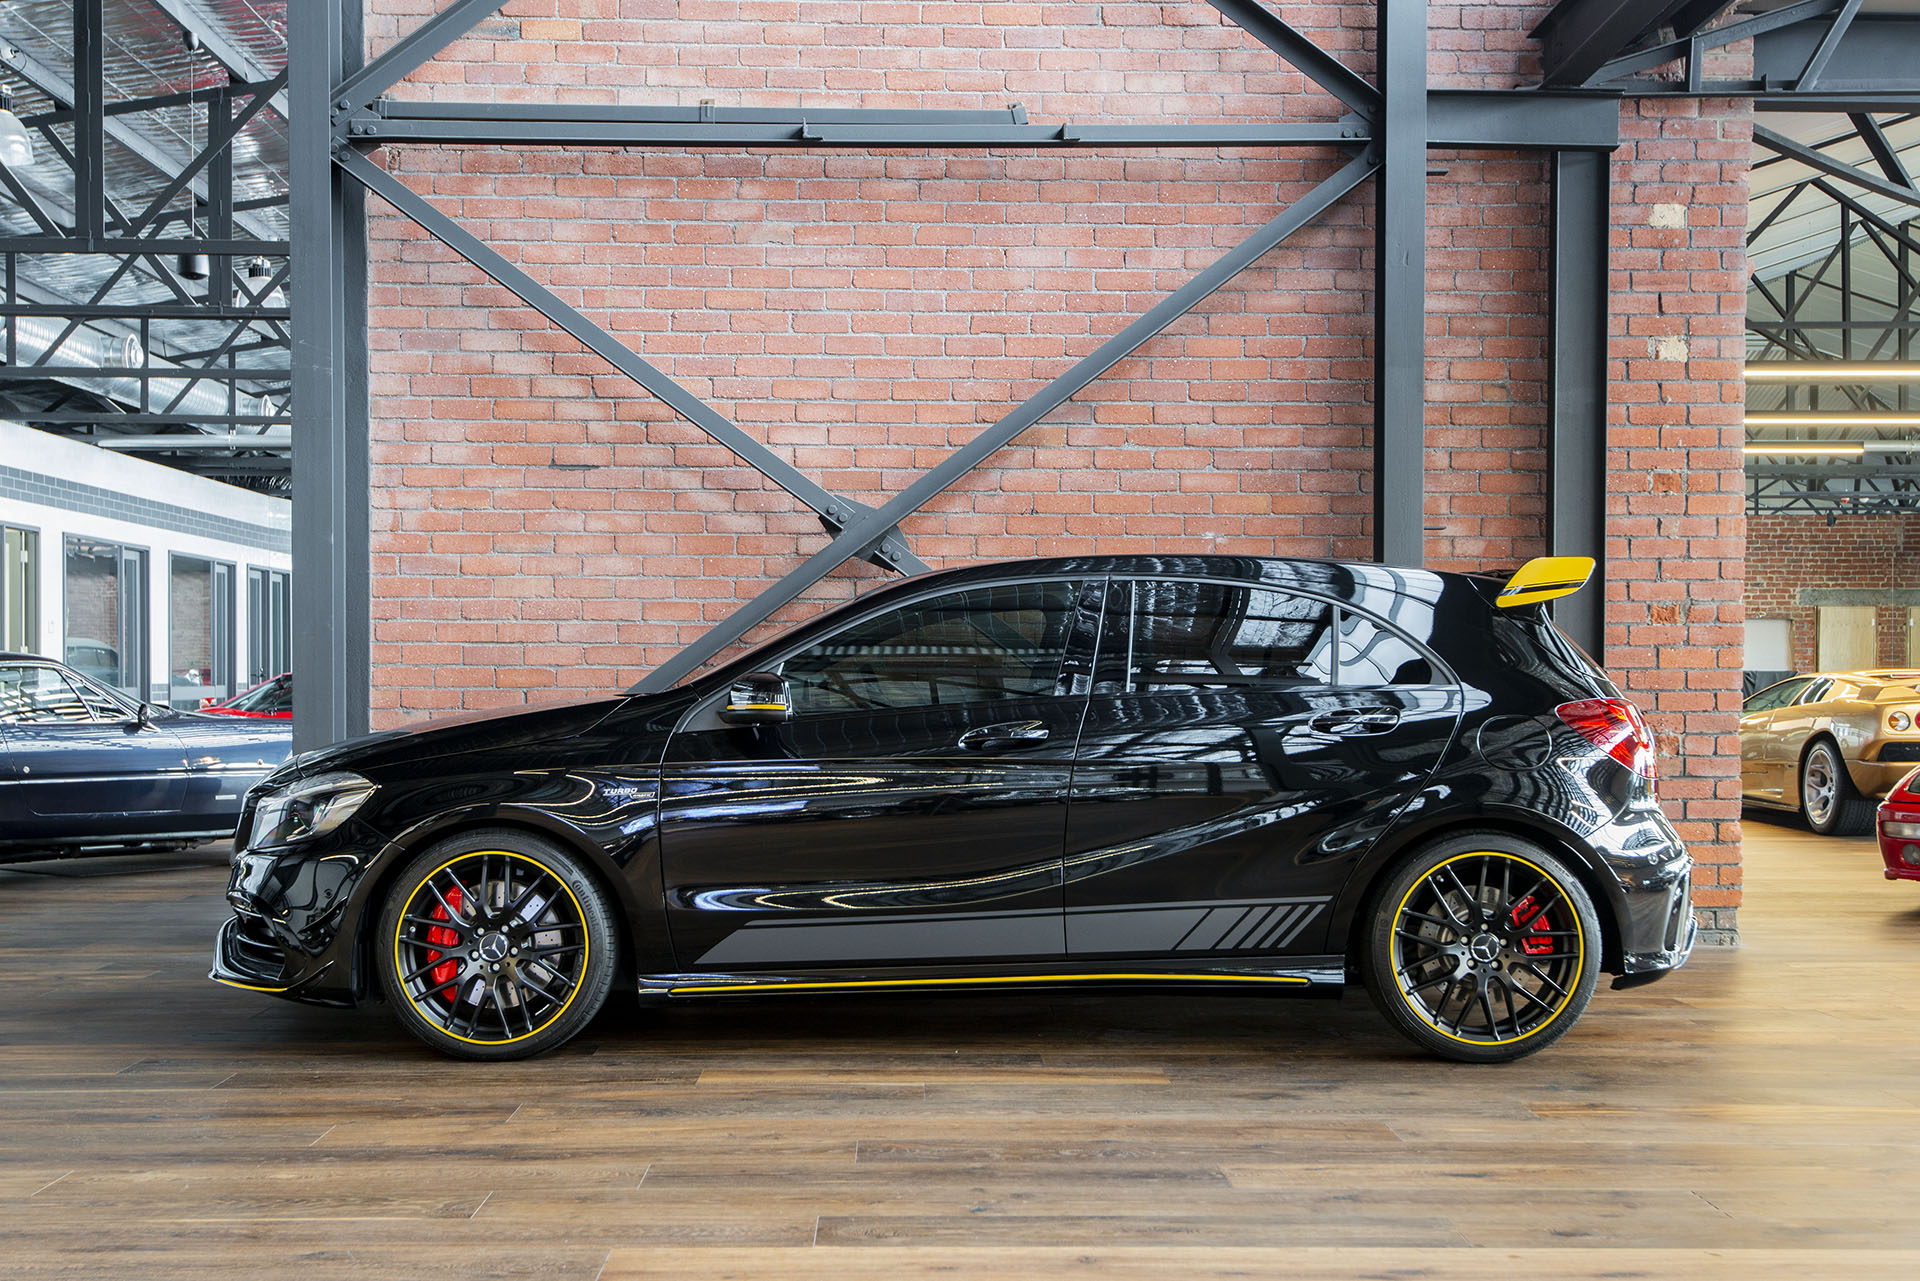 Performance Cars For Sale >> 2017 Mercedes-Benz A45 AMG - Richmonds - Classic and Prestige Cars - Storage and Sales ...